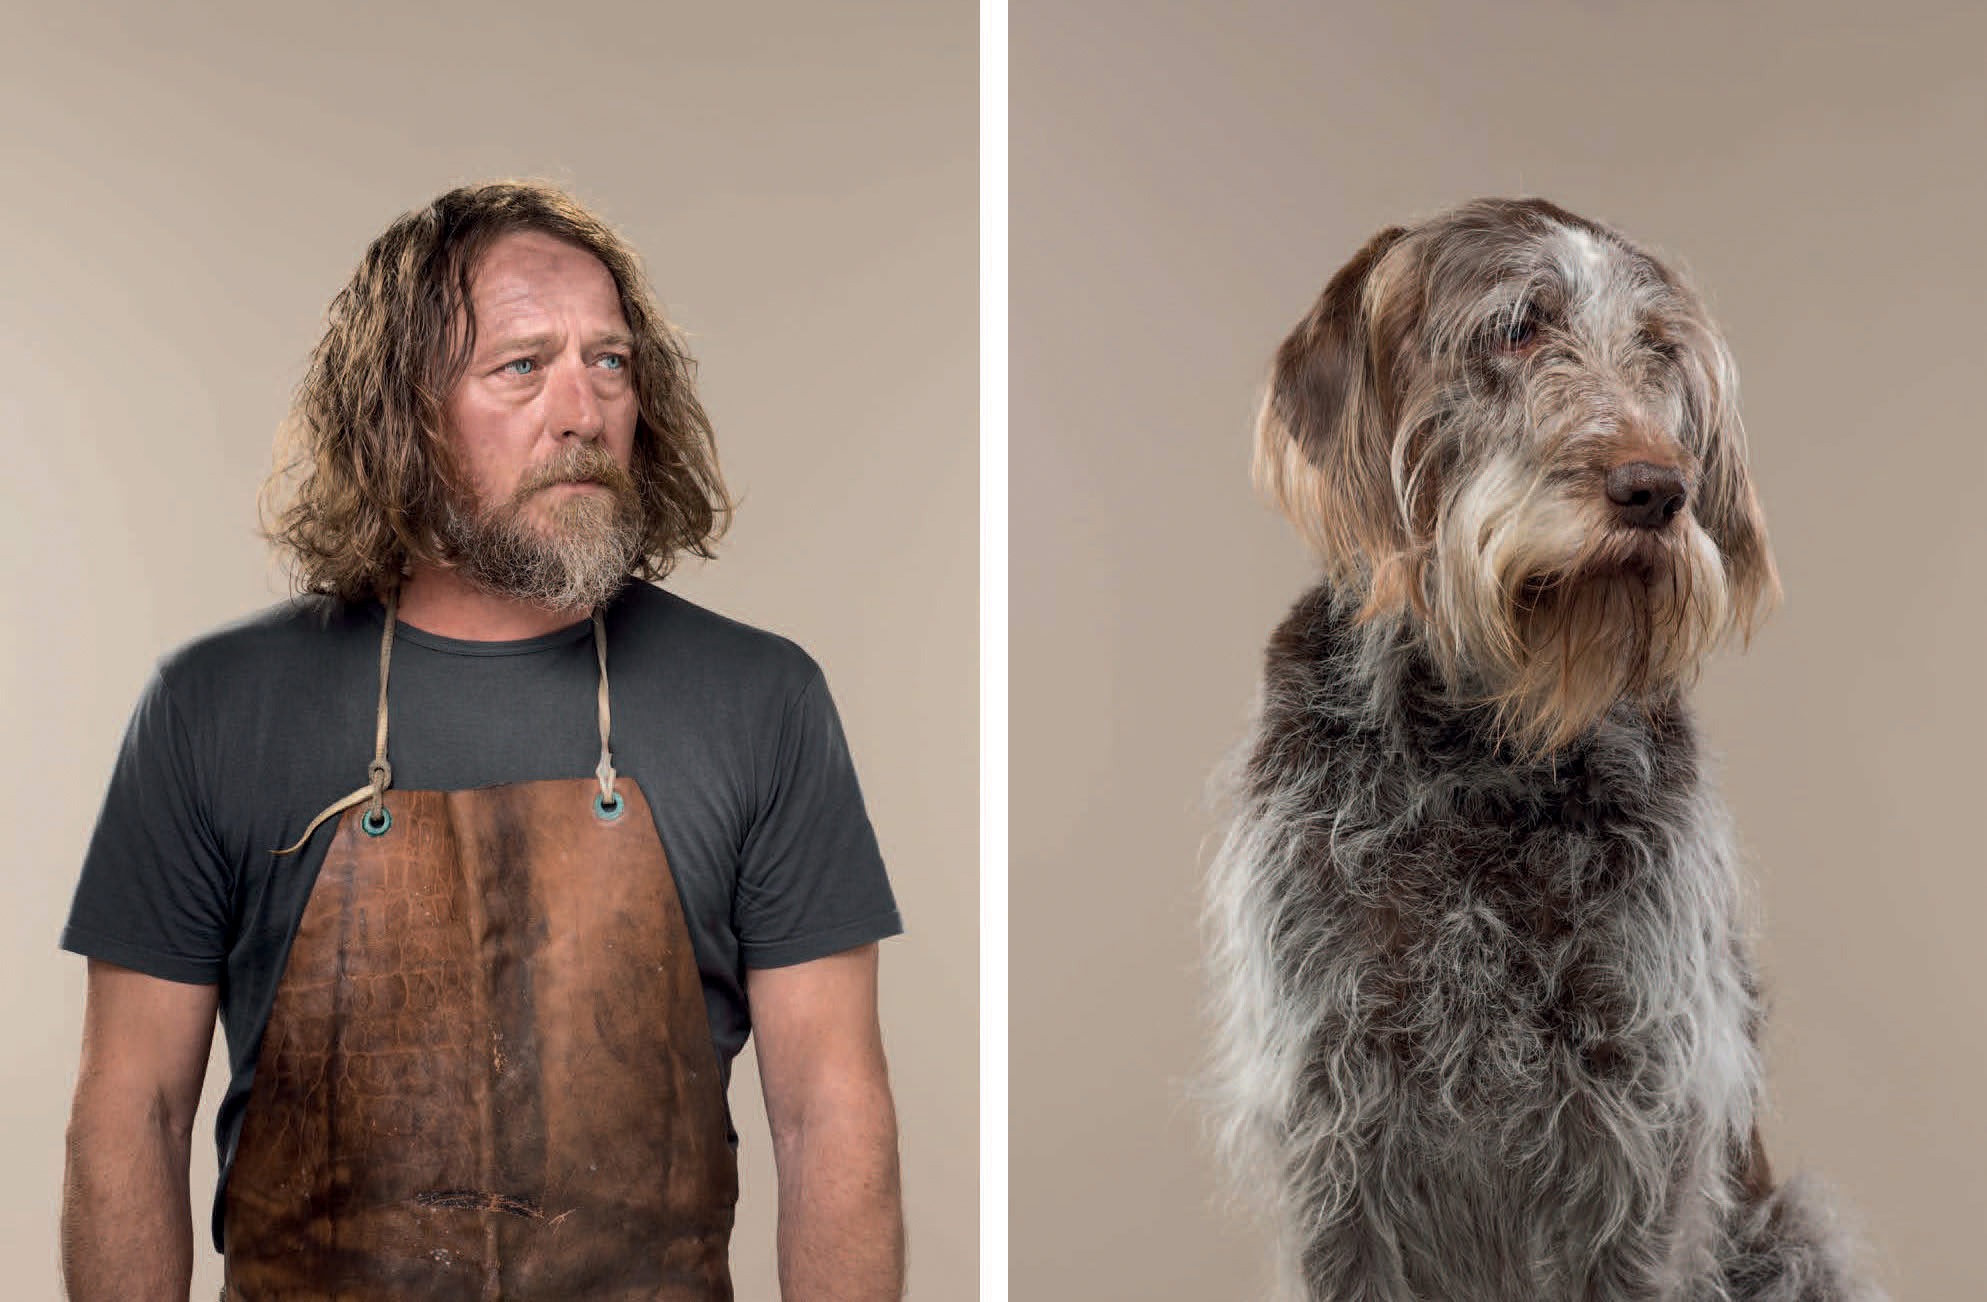 Uncanny Resemblances Between Classic Dog Breeds and Humans Captured by Gerrard Gethings | Colossal